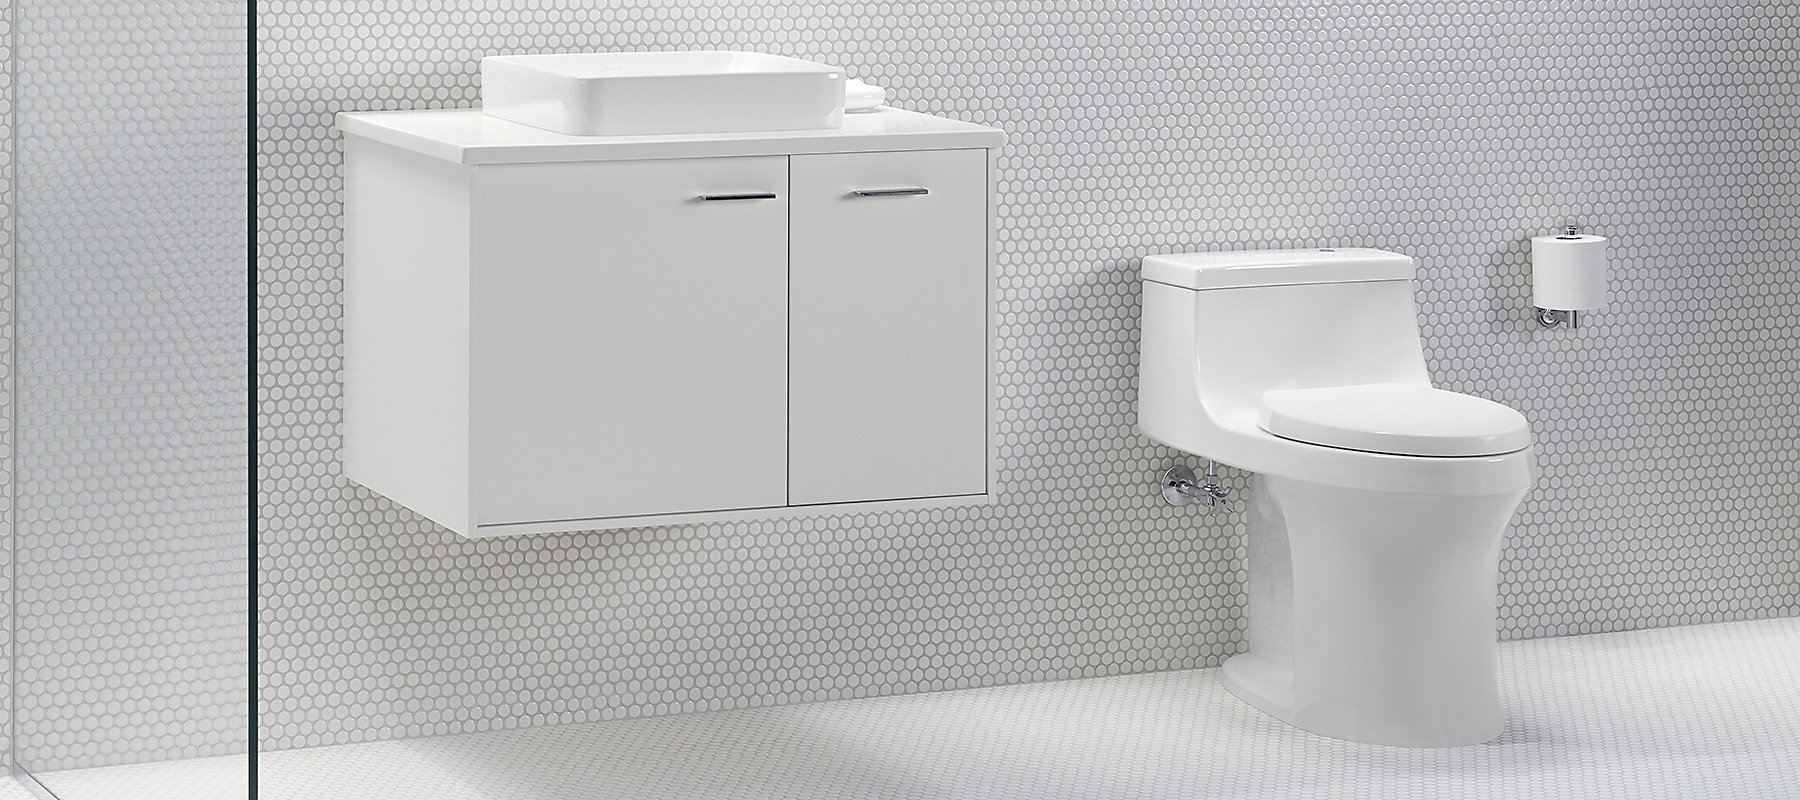 kohler innovative technologies forward thinking designs